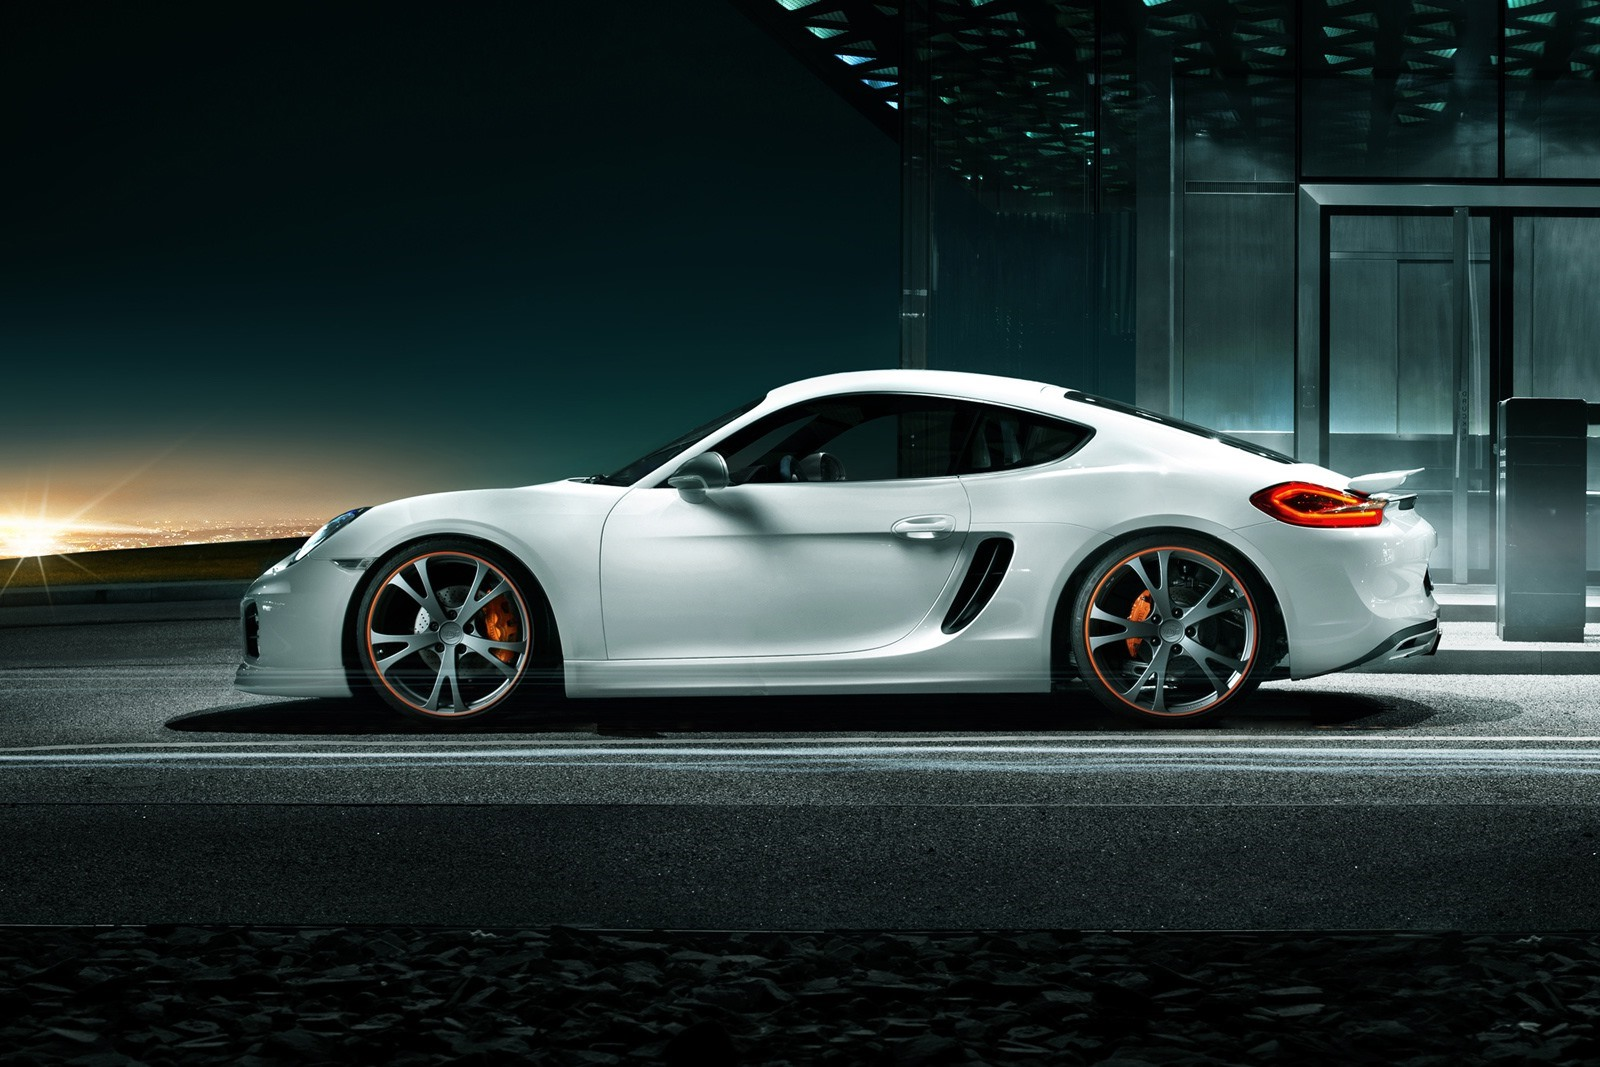 Cayman S Everyday Car